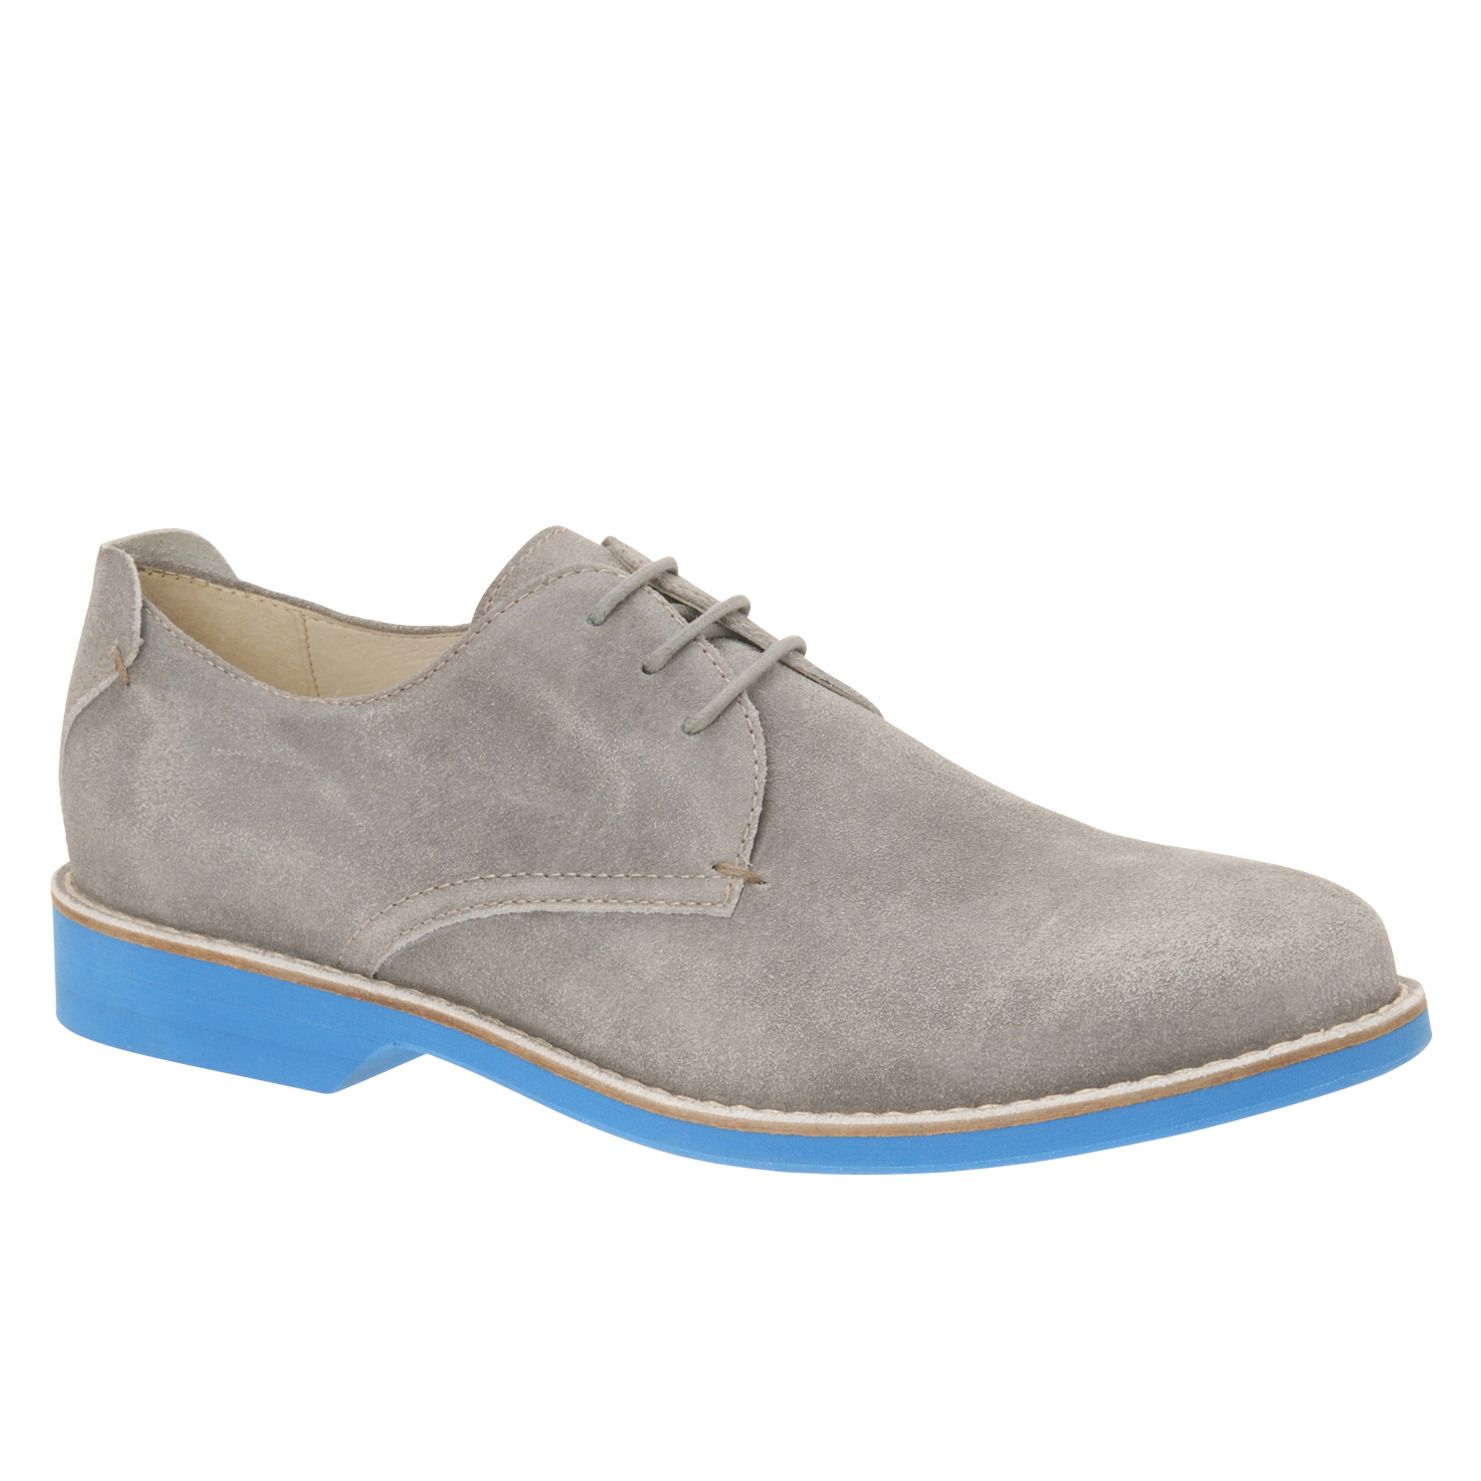 16b75508 ARKIN - sale's sale shoes men for sale at ALDO Shoes. | For my feet ...